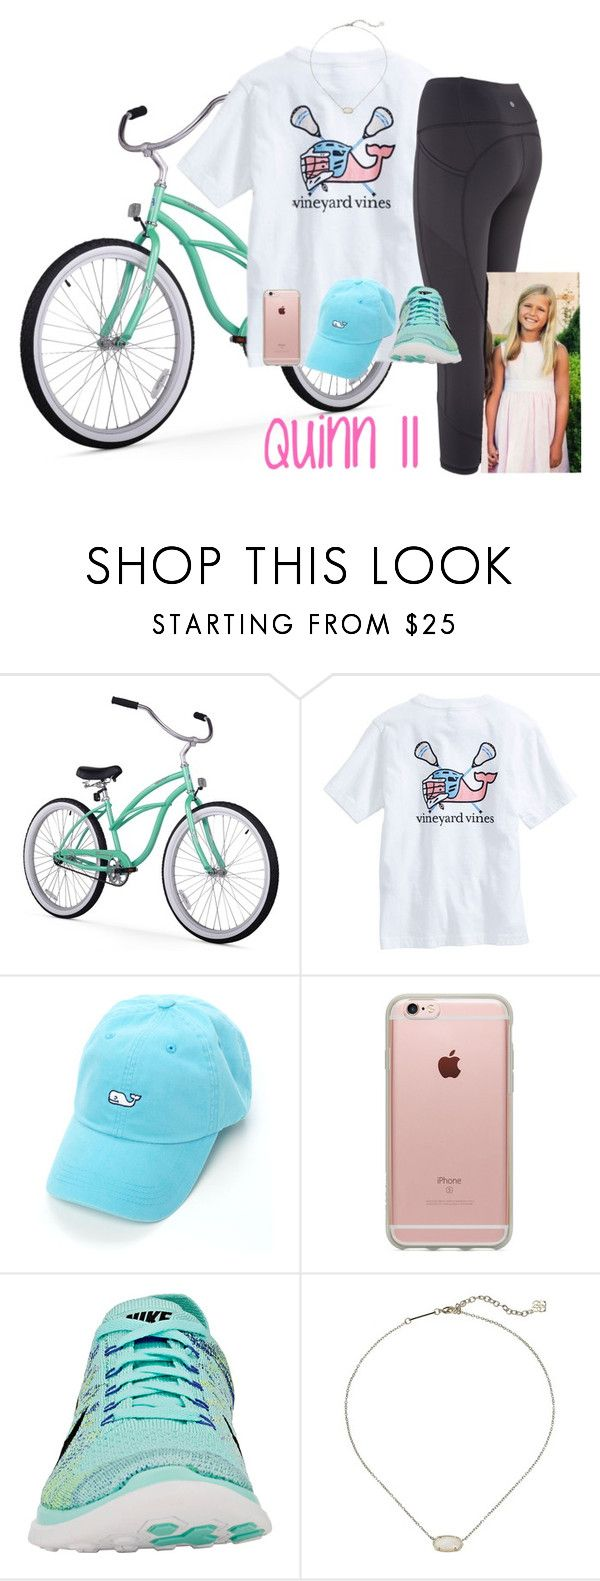 """""""Quinn: bike ride"""" by mypreppyfamily ❤ liked on Polyvore featuring Vineyard Vines, Incase, NIKE and Kendra Scott"""